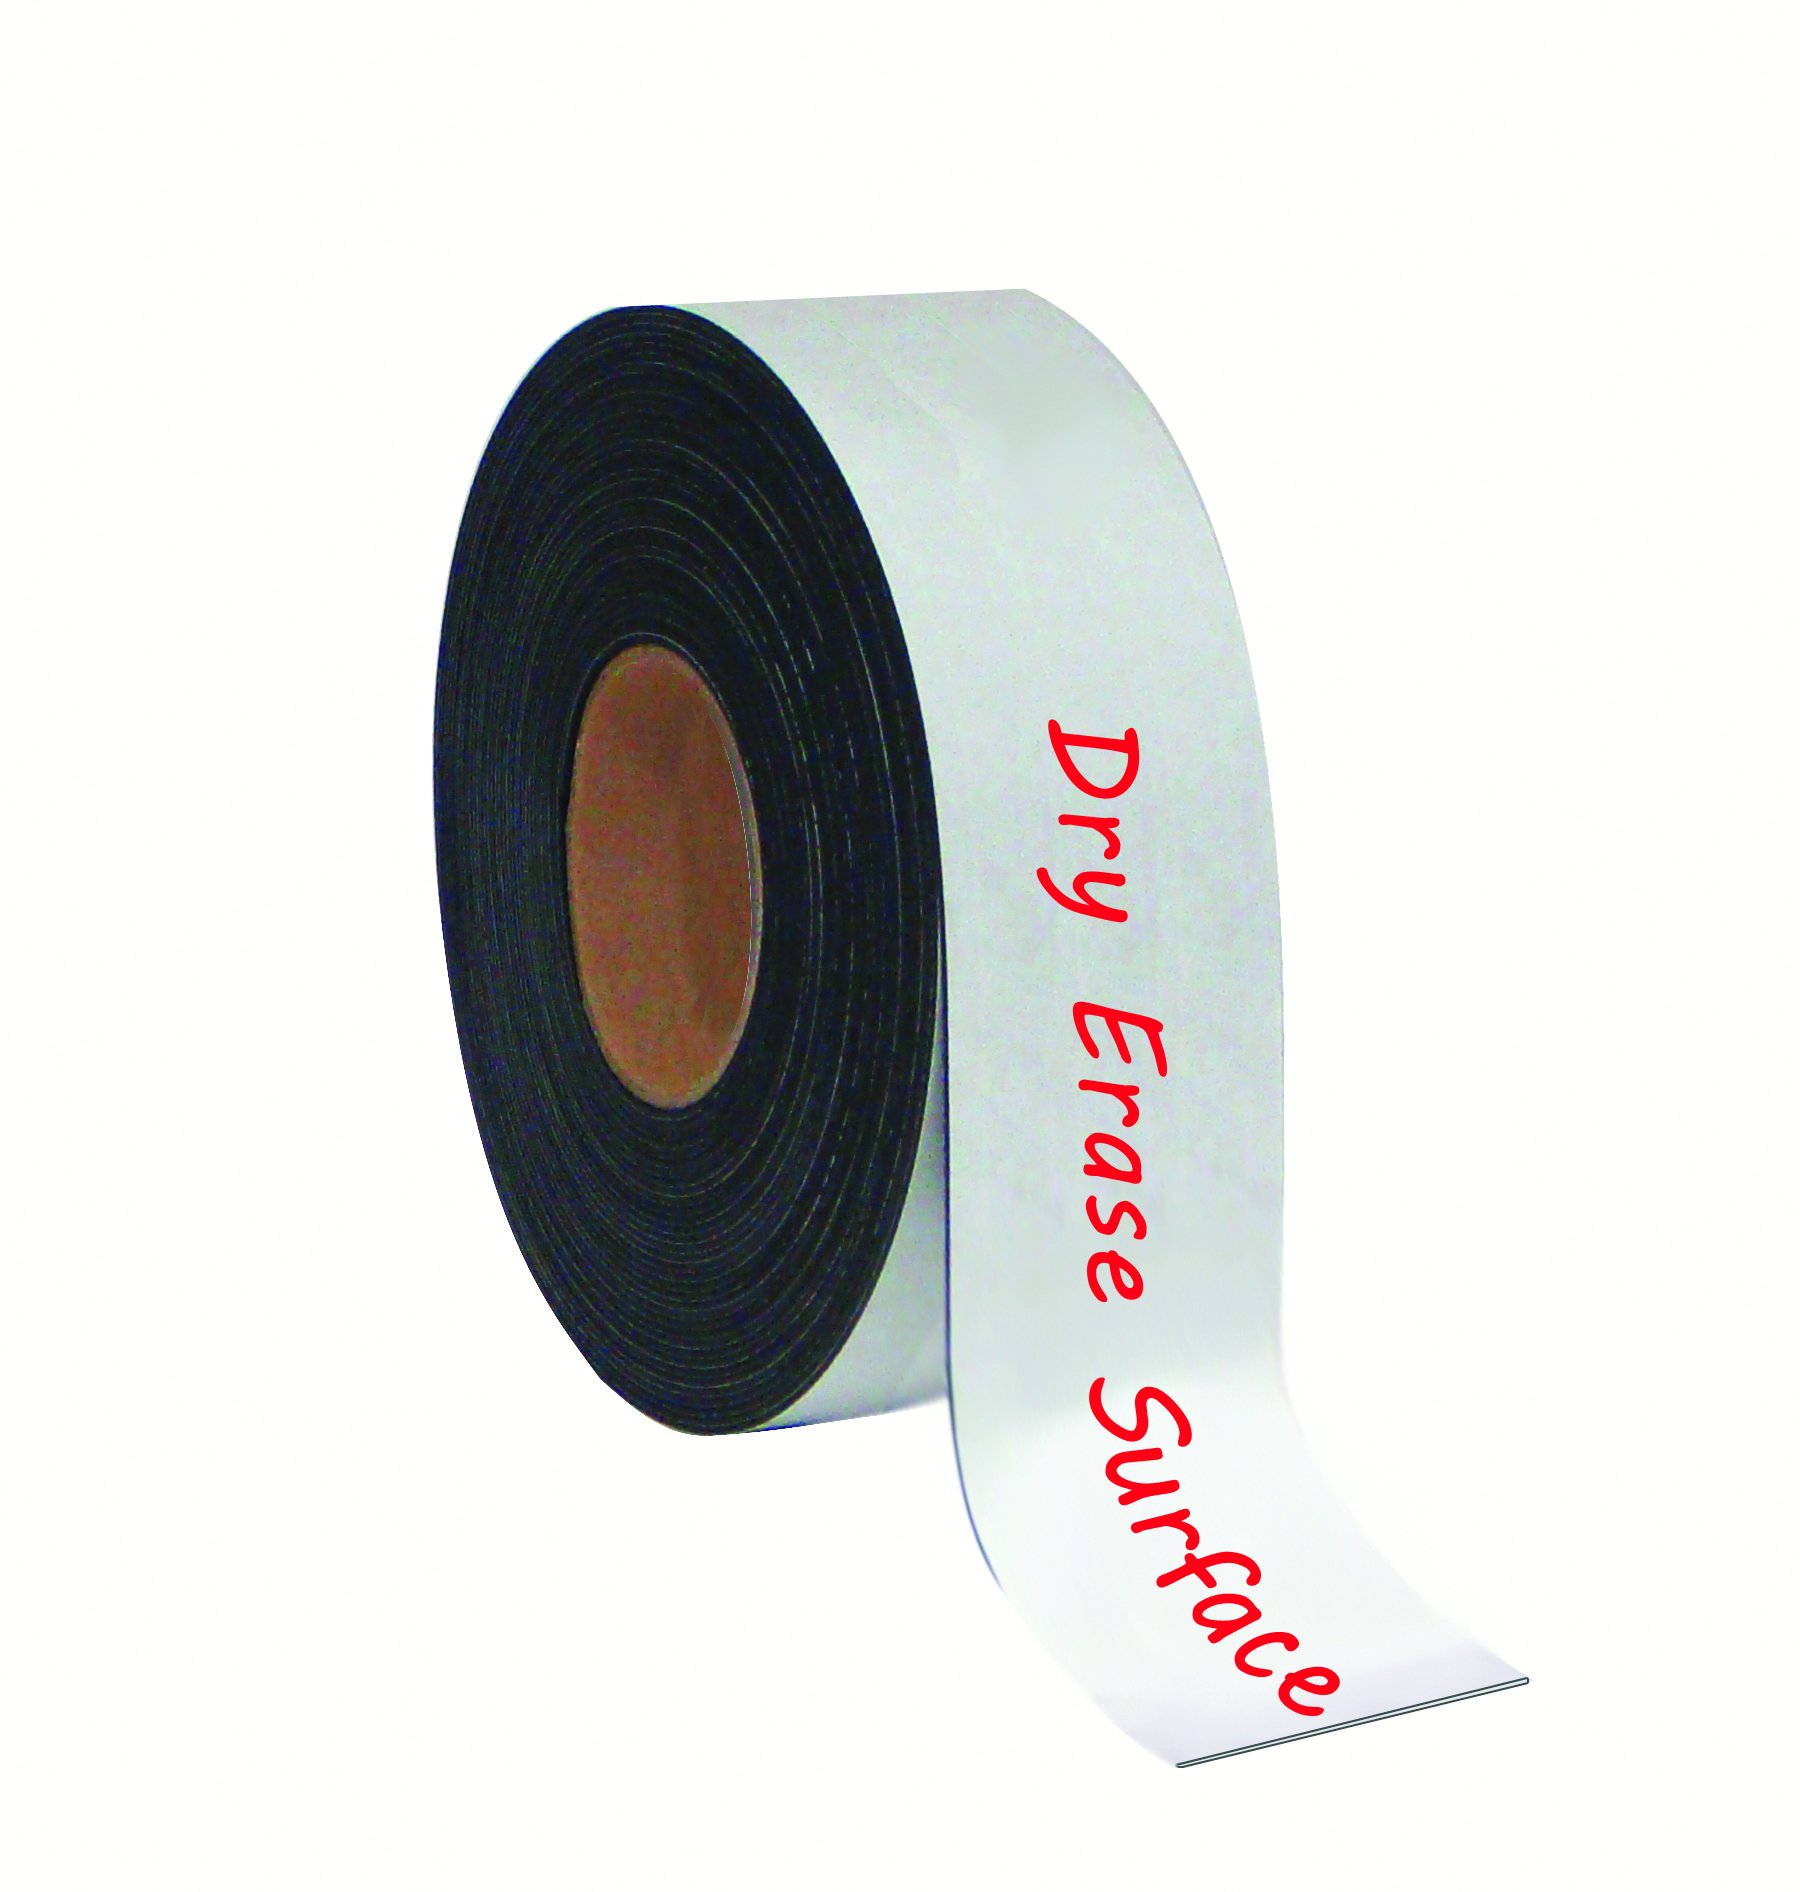 MasterVision Tape Roll Magnetic Dry Erase, 2'' x 50' White by MasterVision